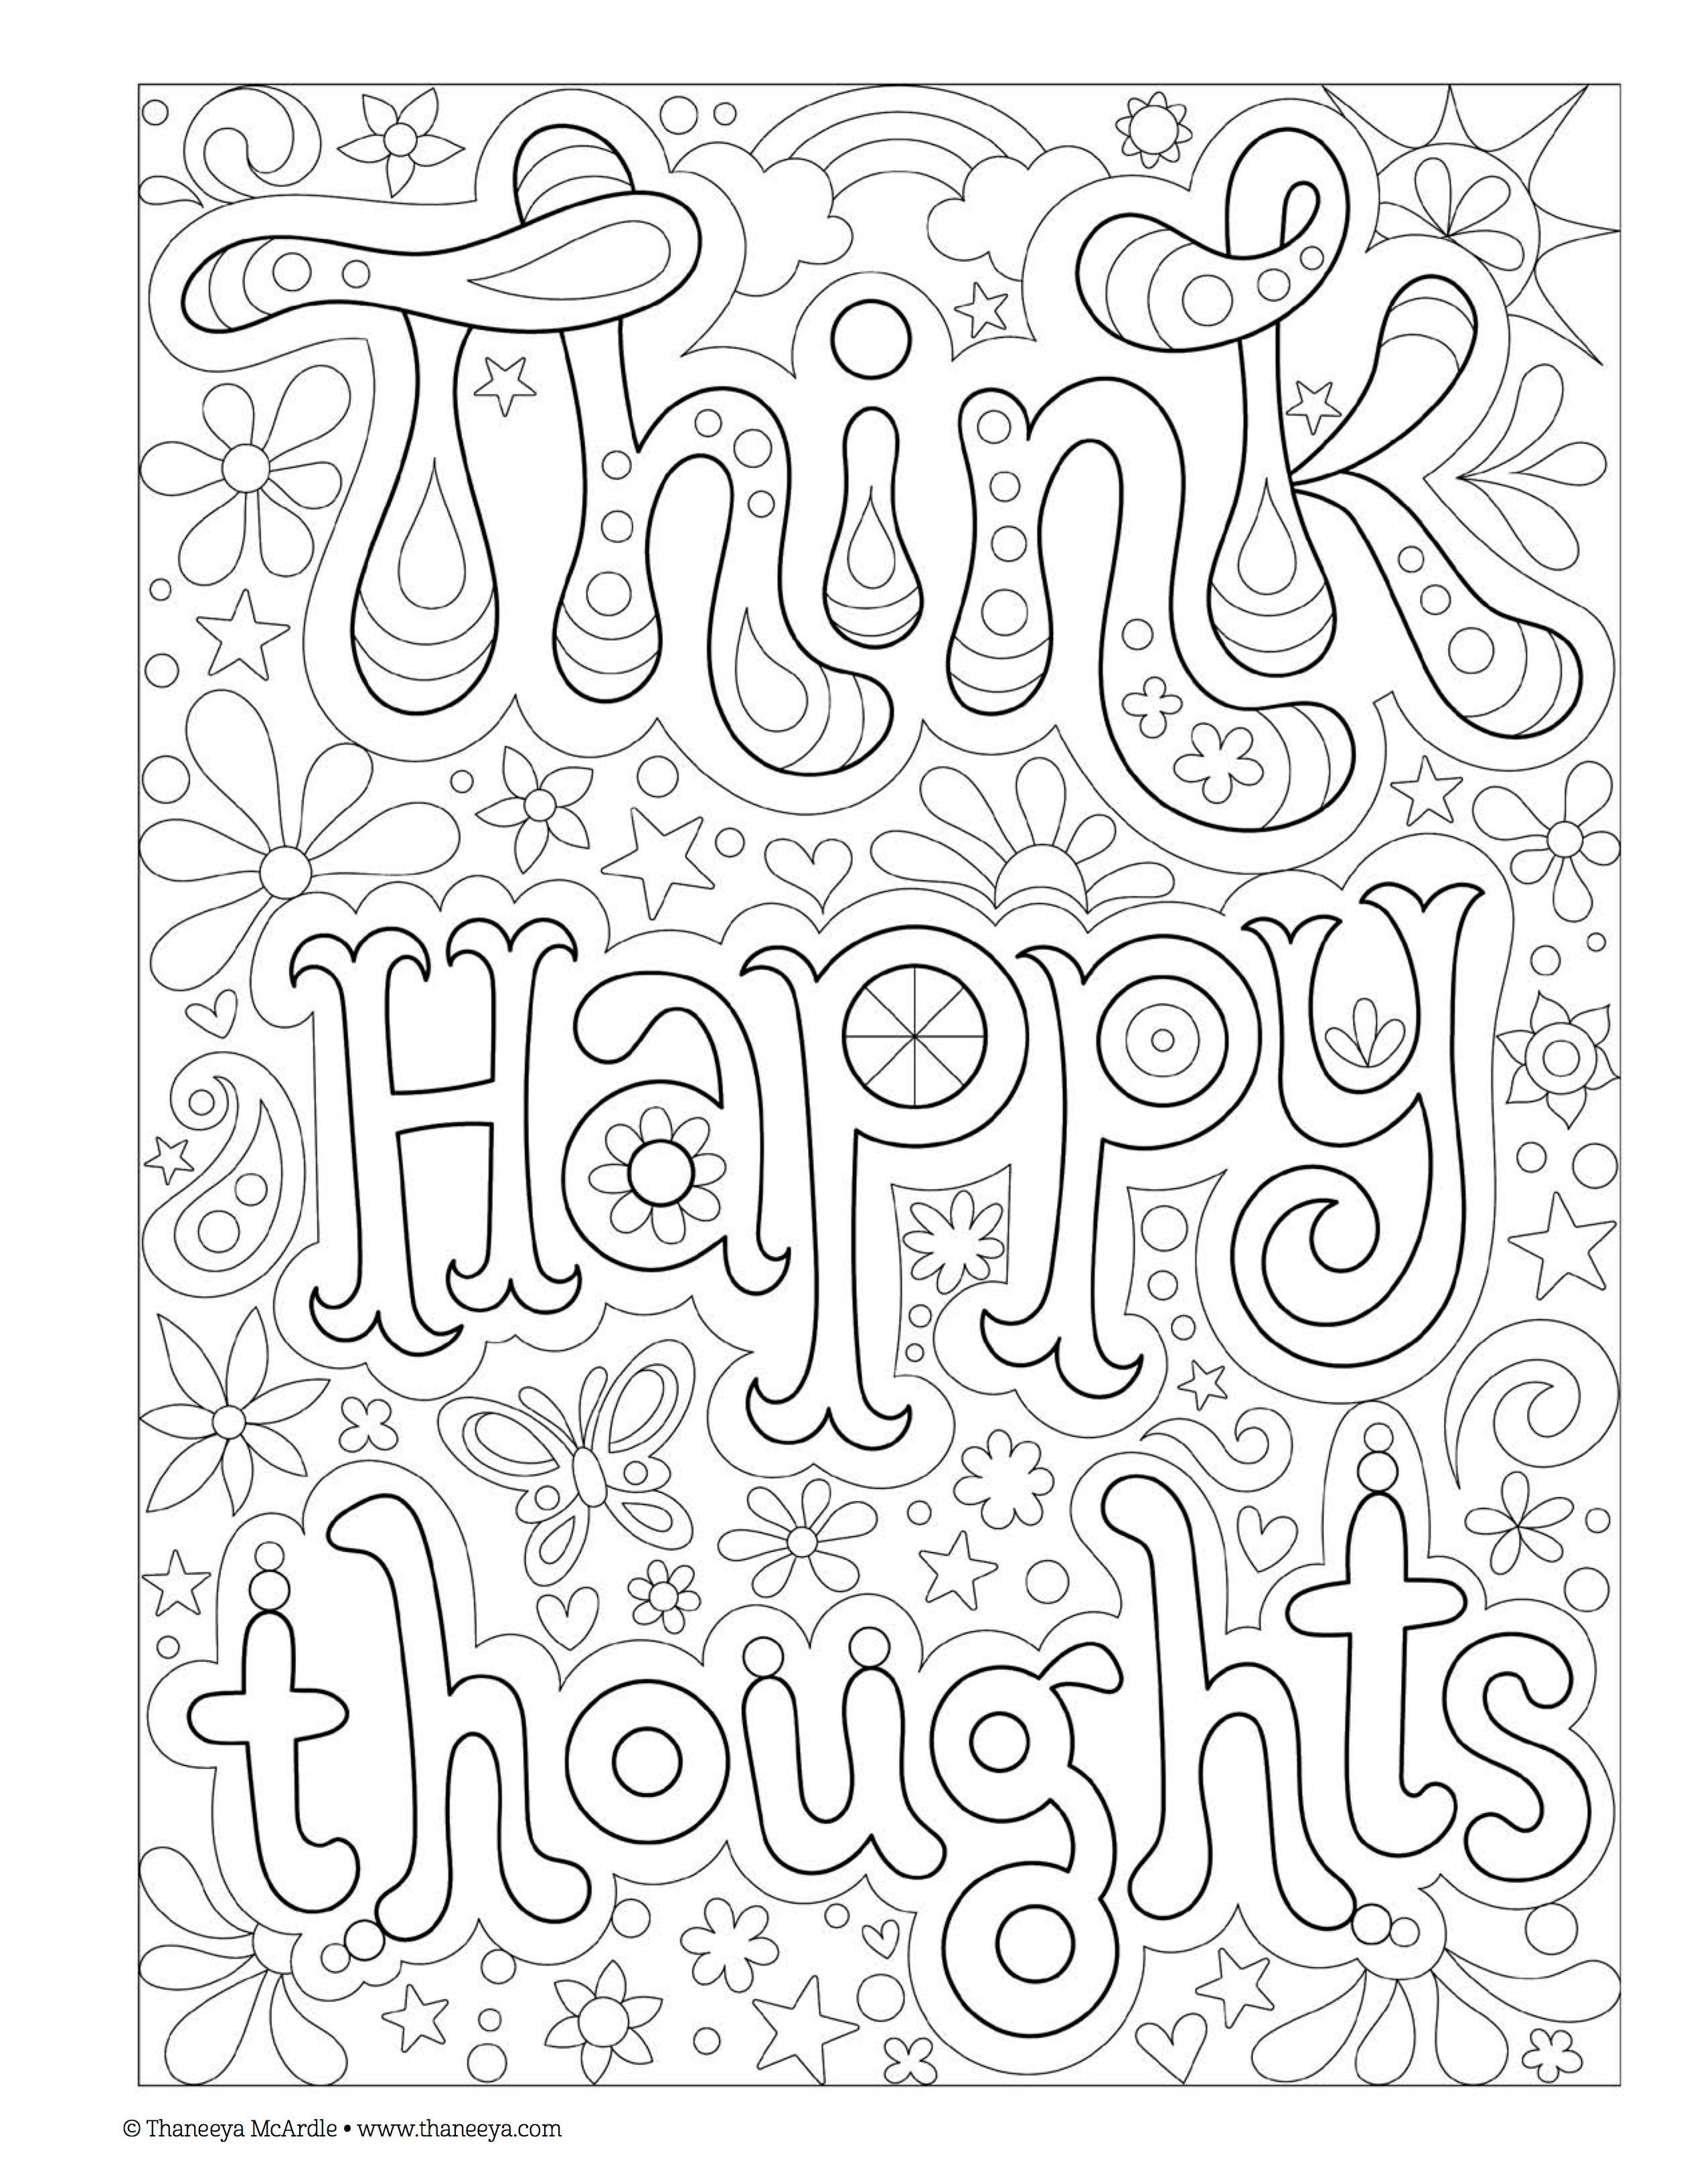 Good Vibes Coloring Book Coloring Is Fun Thaneeya Mcardle 0758381174215 Amazon Com Books Coloring Books Coloring Pages Inspirational Skull Coloring Pages